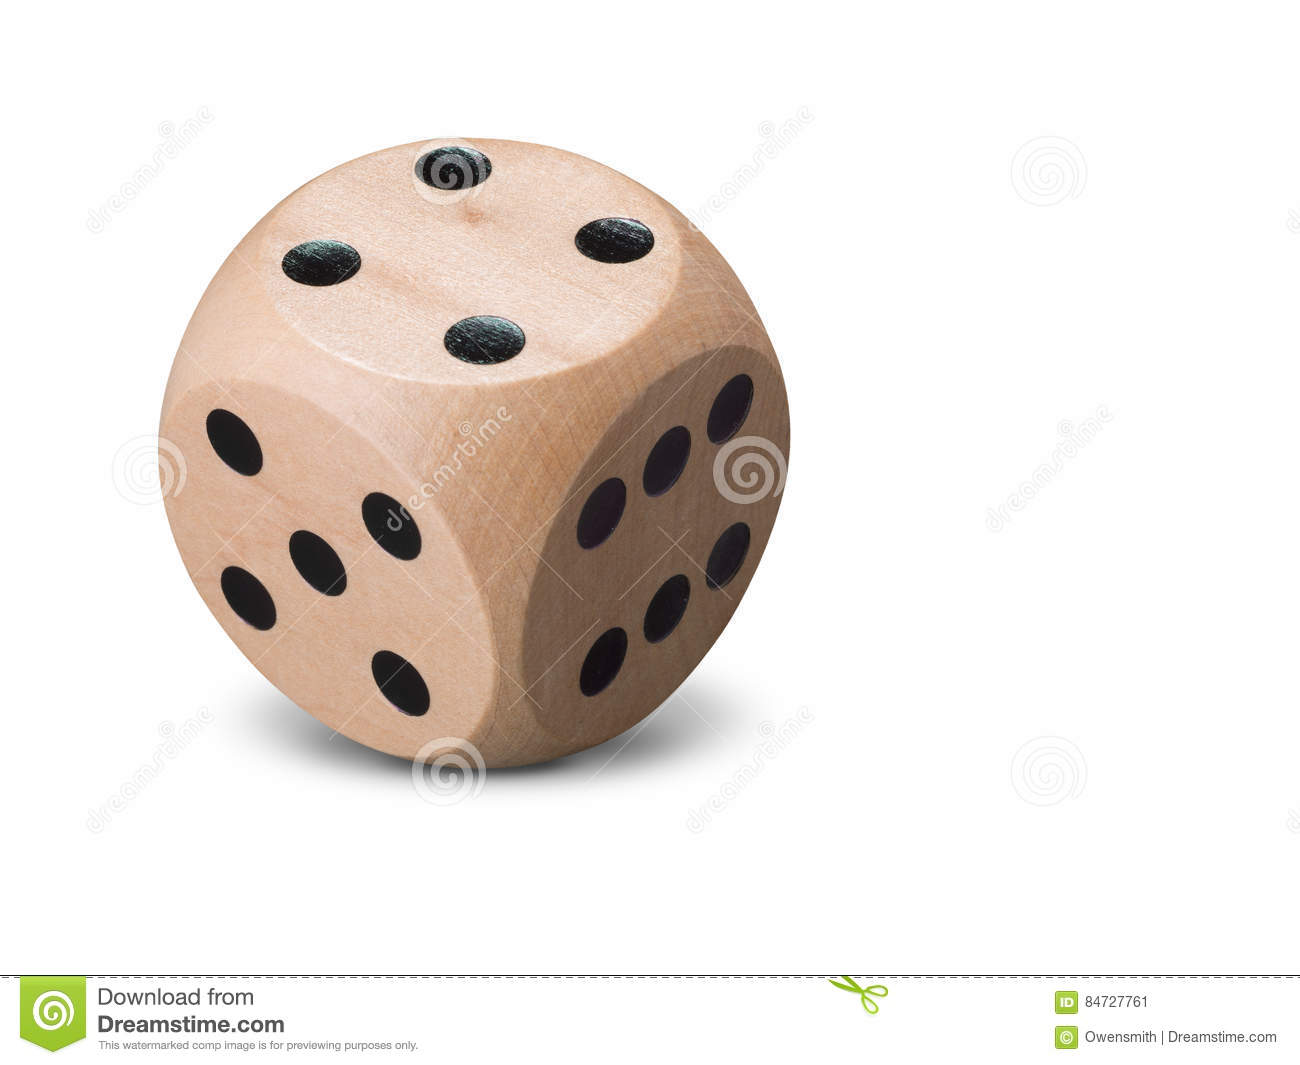 Single wooden Dice on white background